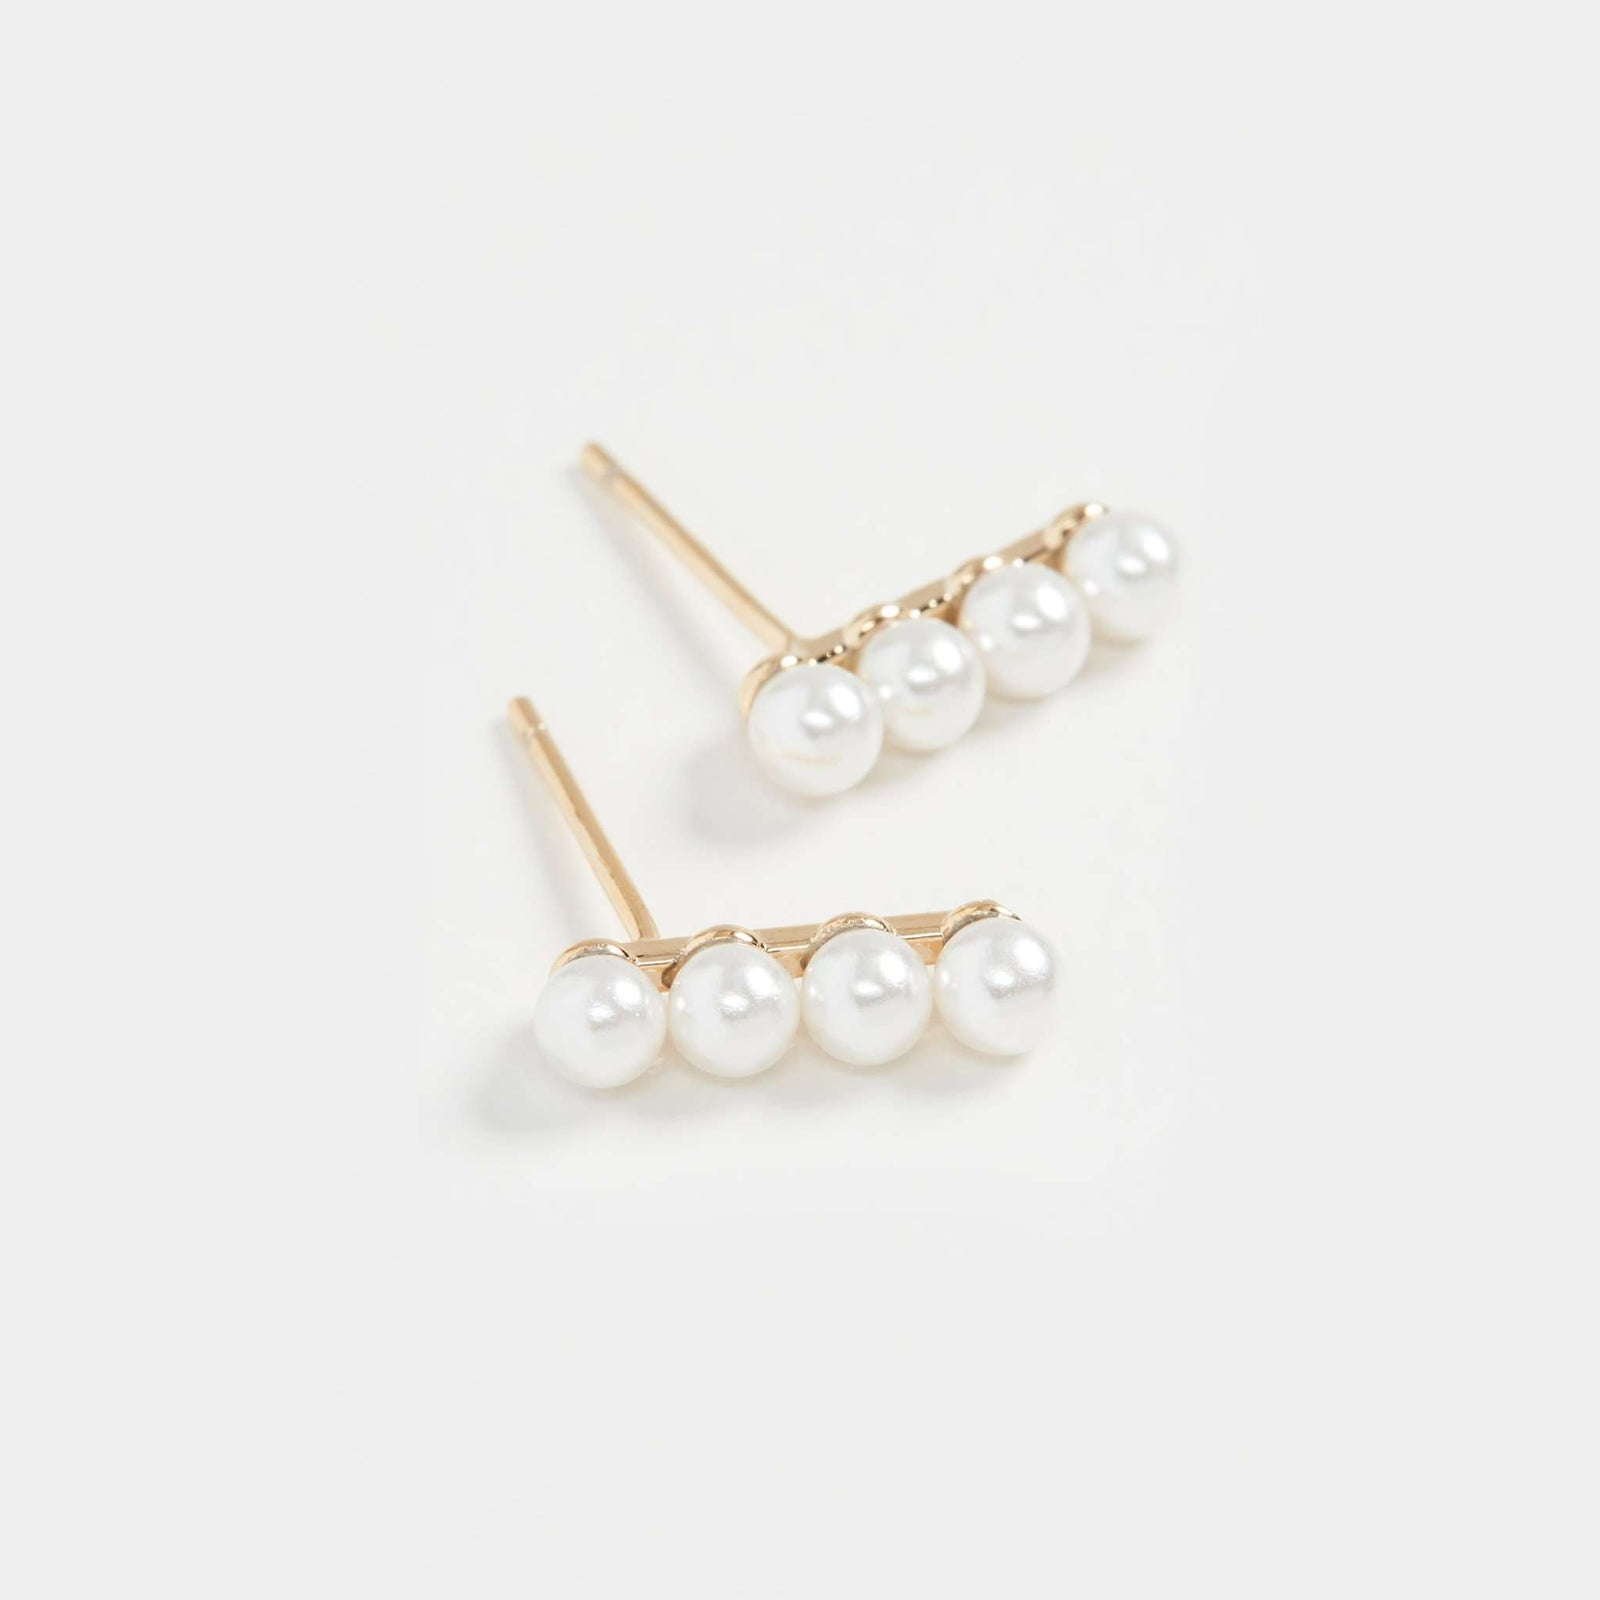 empress-studearrings-jewelry